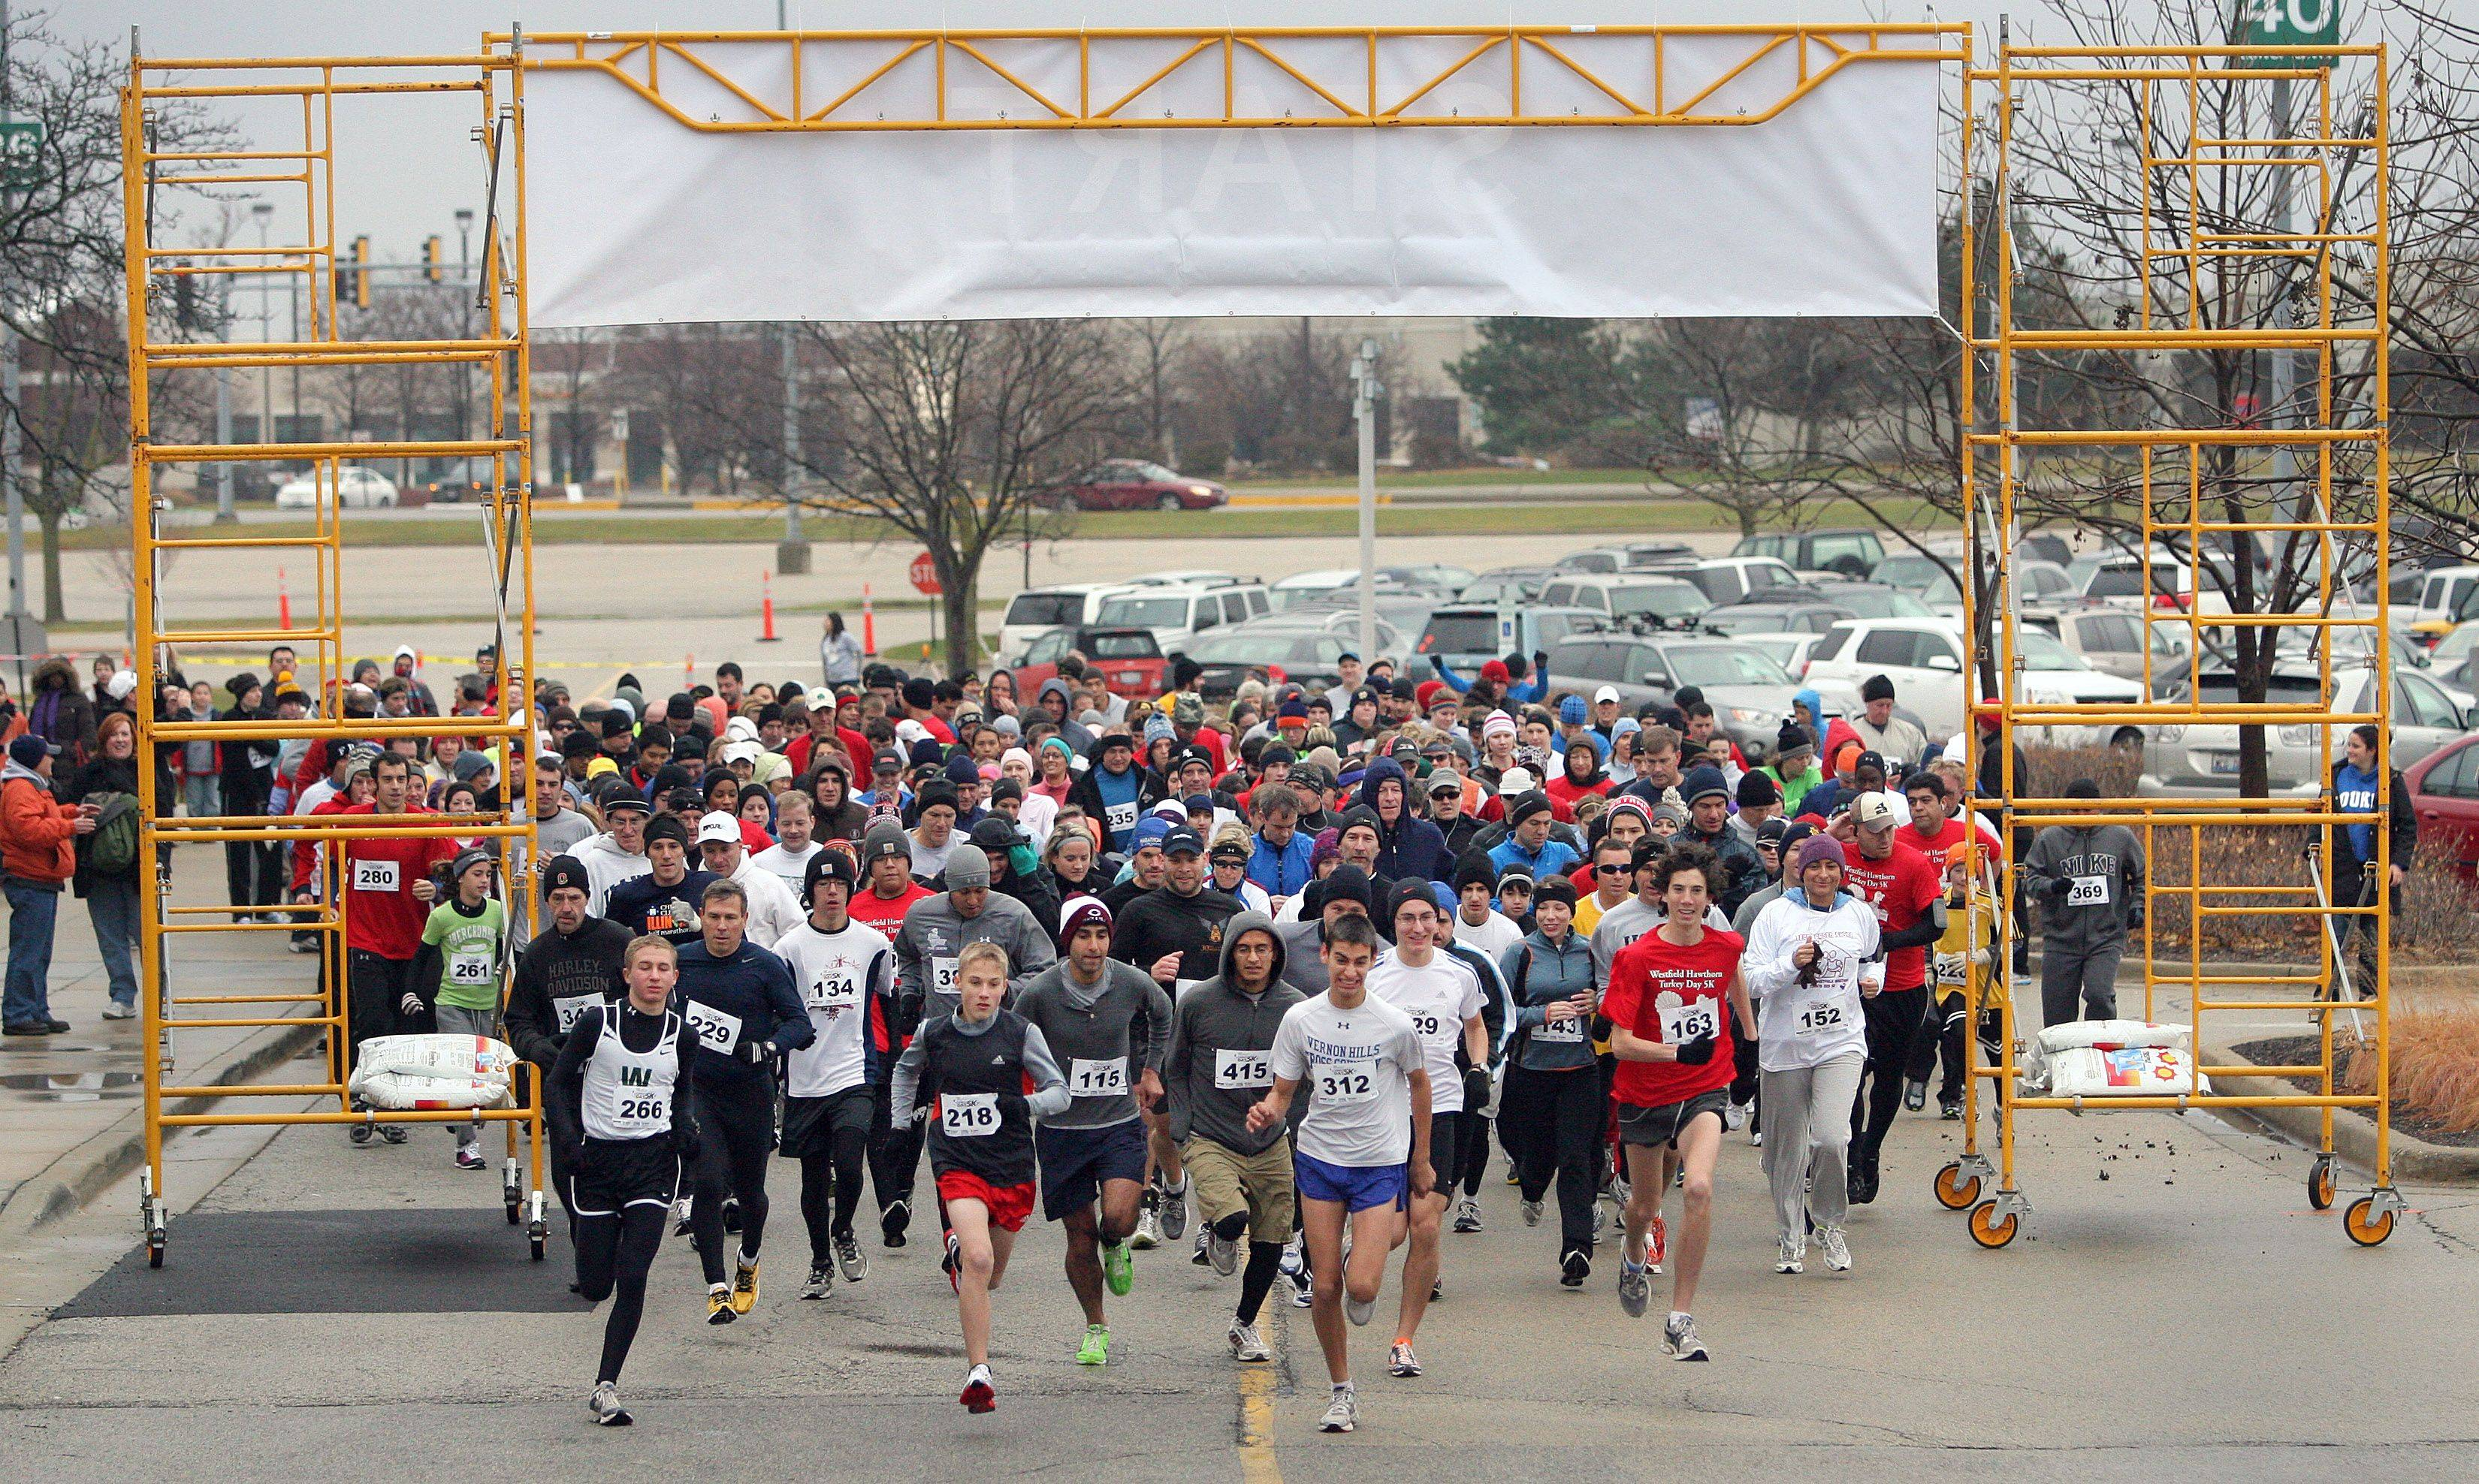 Runners dash at the start of the Second Annual Westfield Hawthorn Turkey Day 5k run at Wesfield Hawthorn Mall in Vernon Hills Thursday morning.